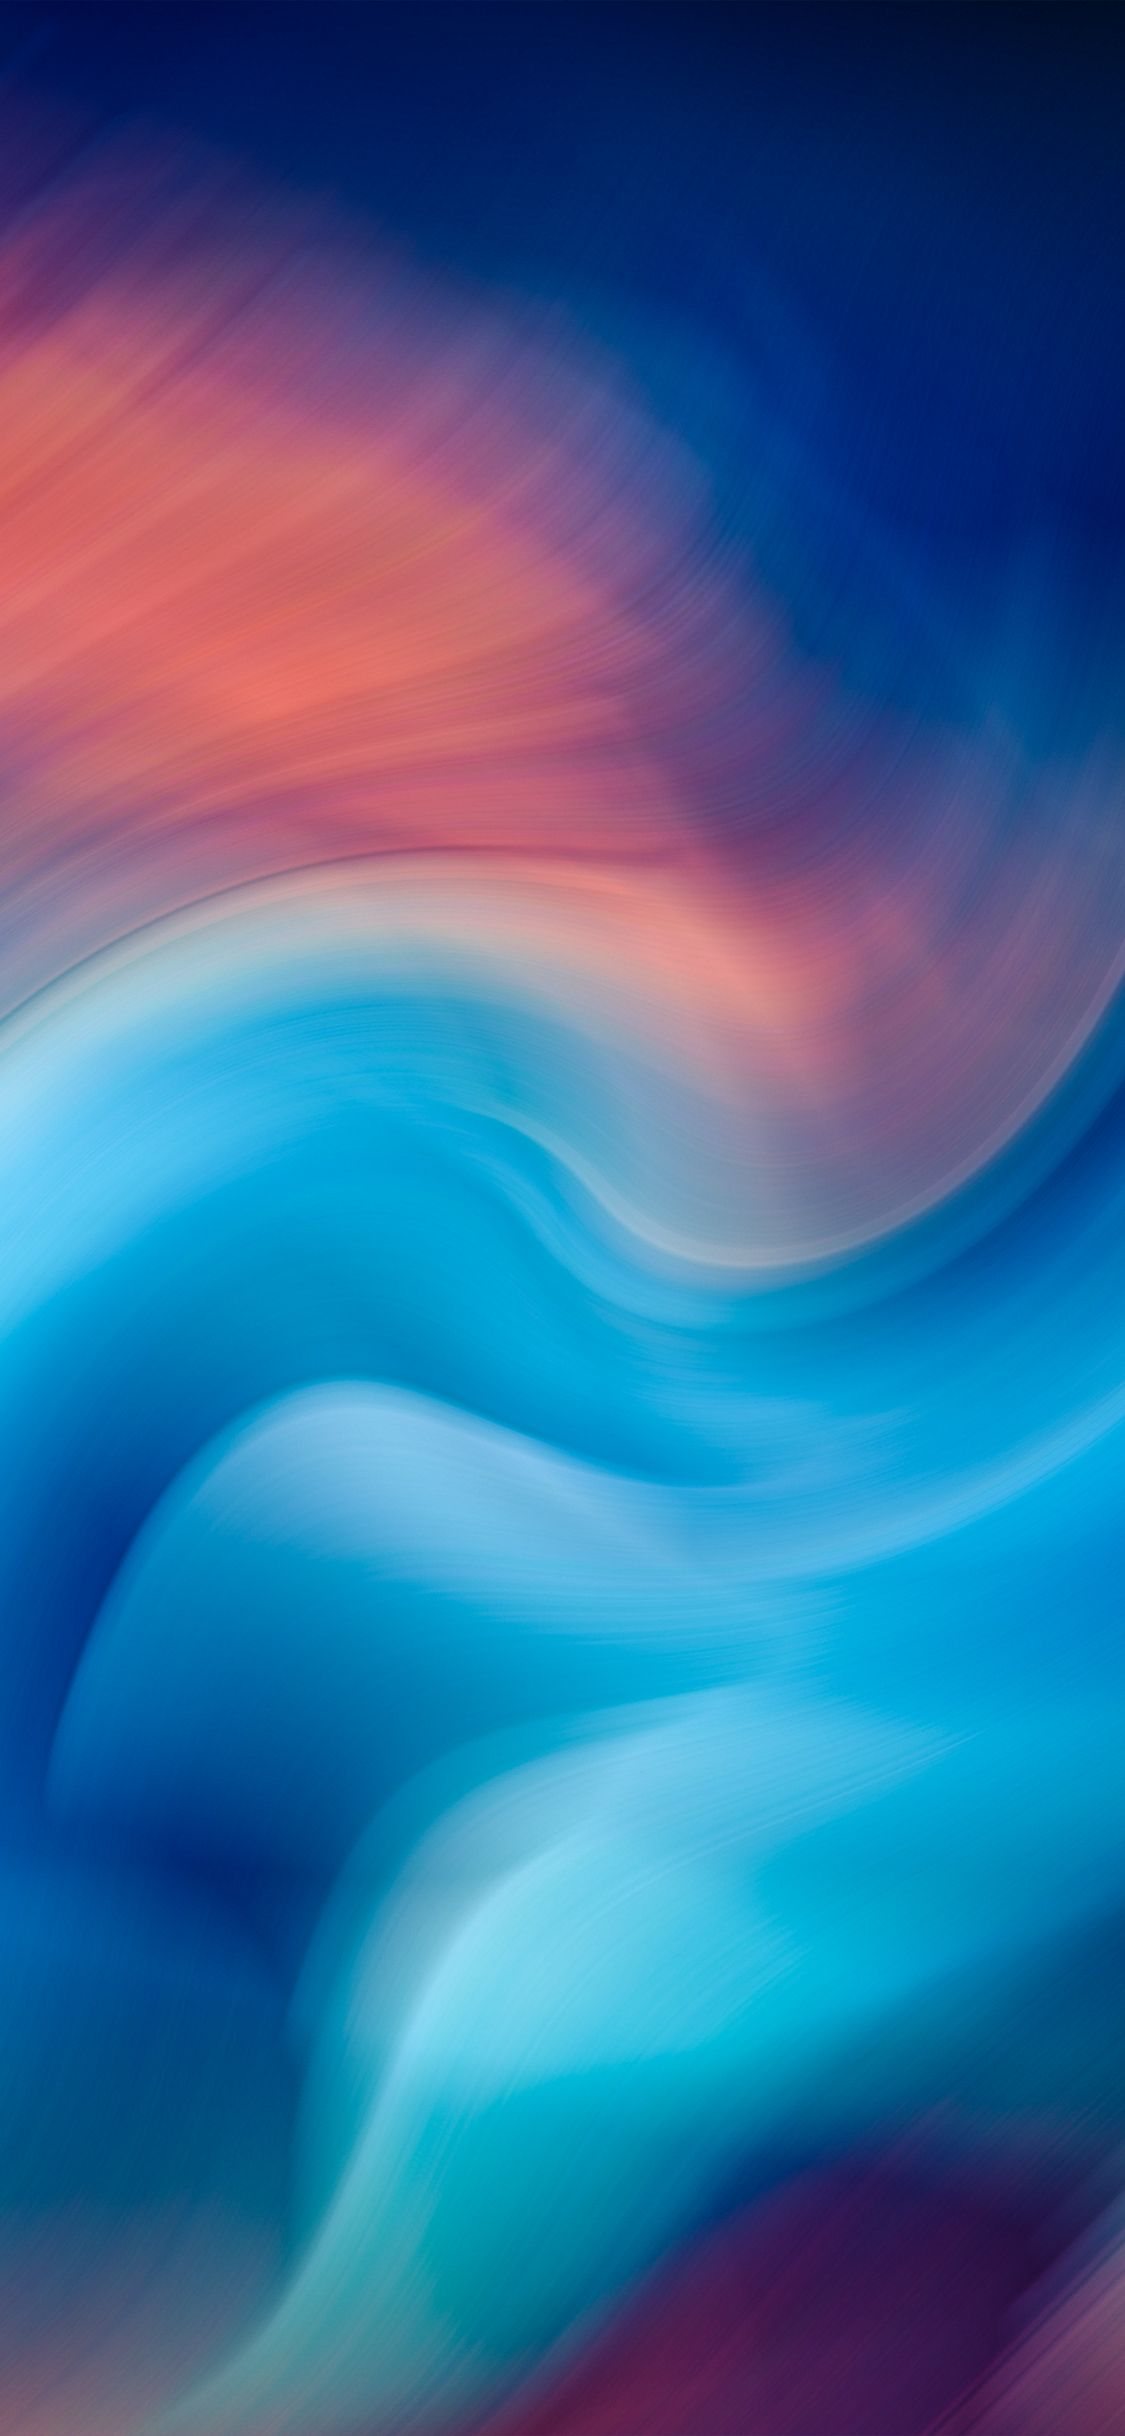 Abstract Painter Blue To Pink Gradient By Hk3ton On Twitter Abstract Iphone Wallpaper Watercolor Wallpaper Iphone Iphone Wallpaper